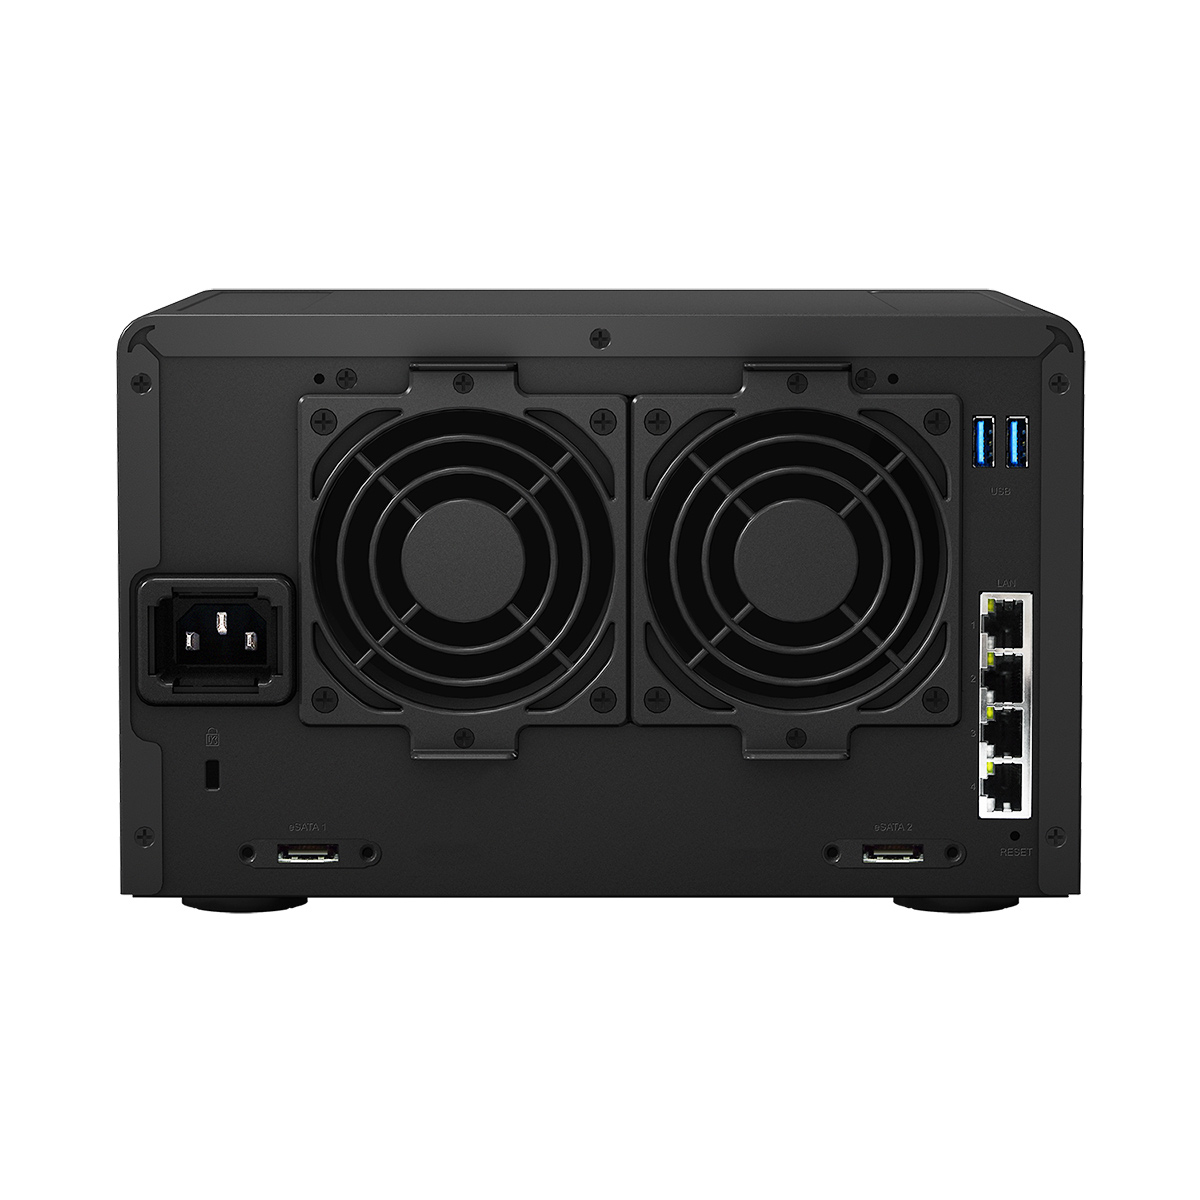 Camera Exterieur Pour Nas Synology Synology Diskstation Ds1515 - Serveur Nas Synology Sur